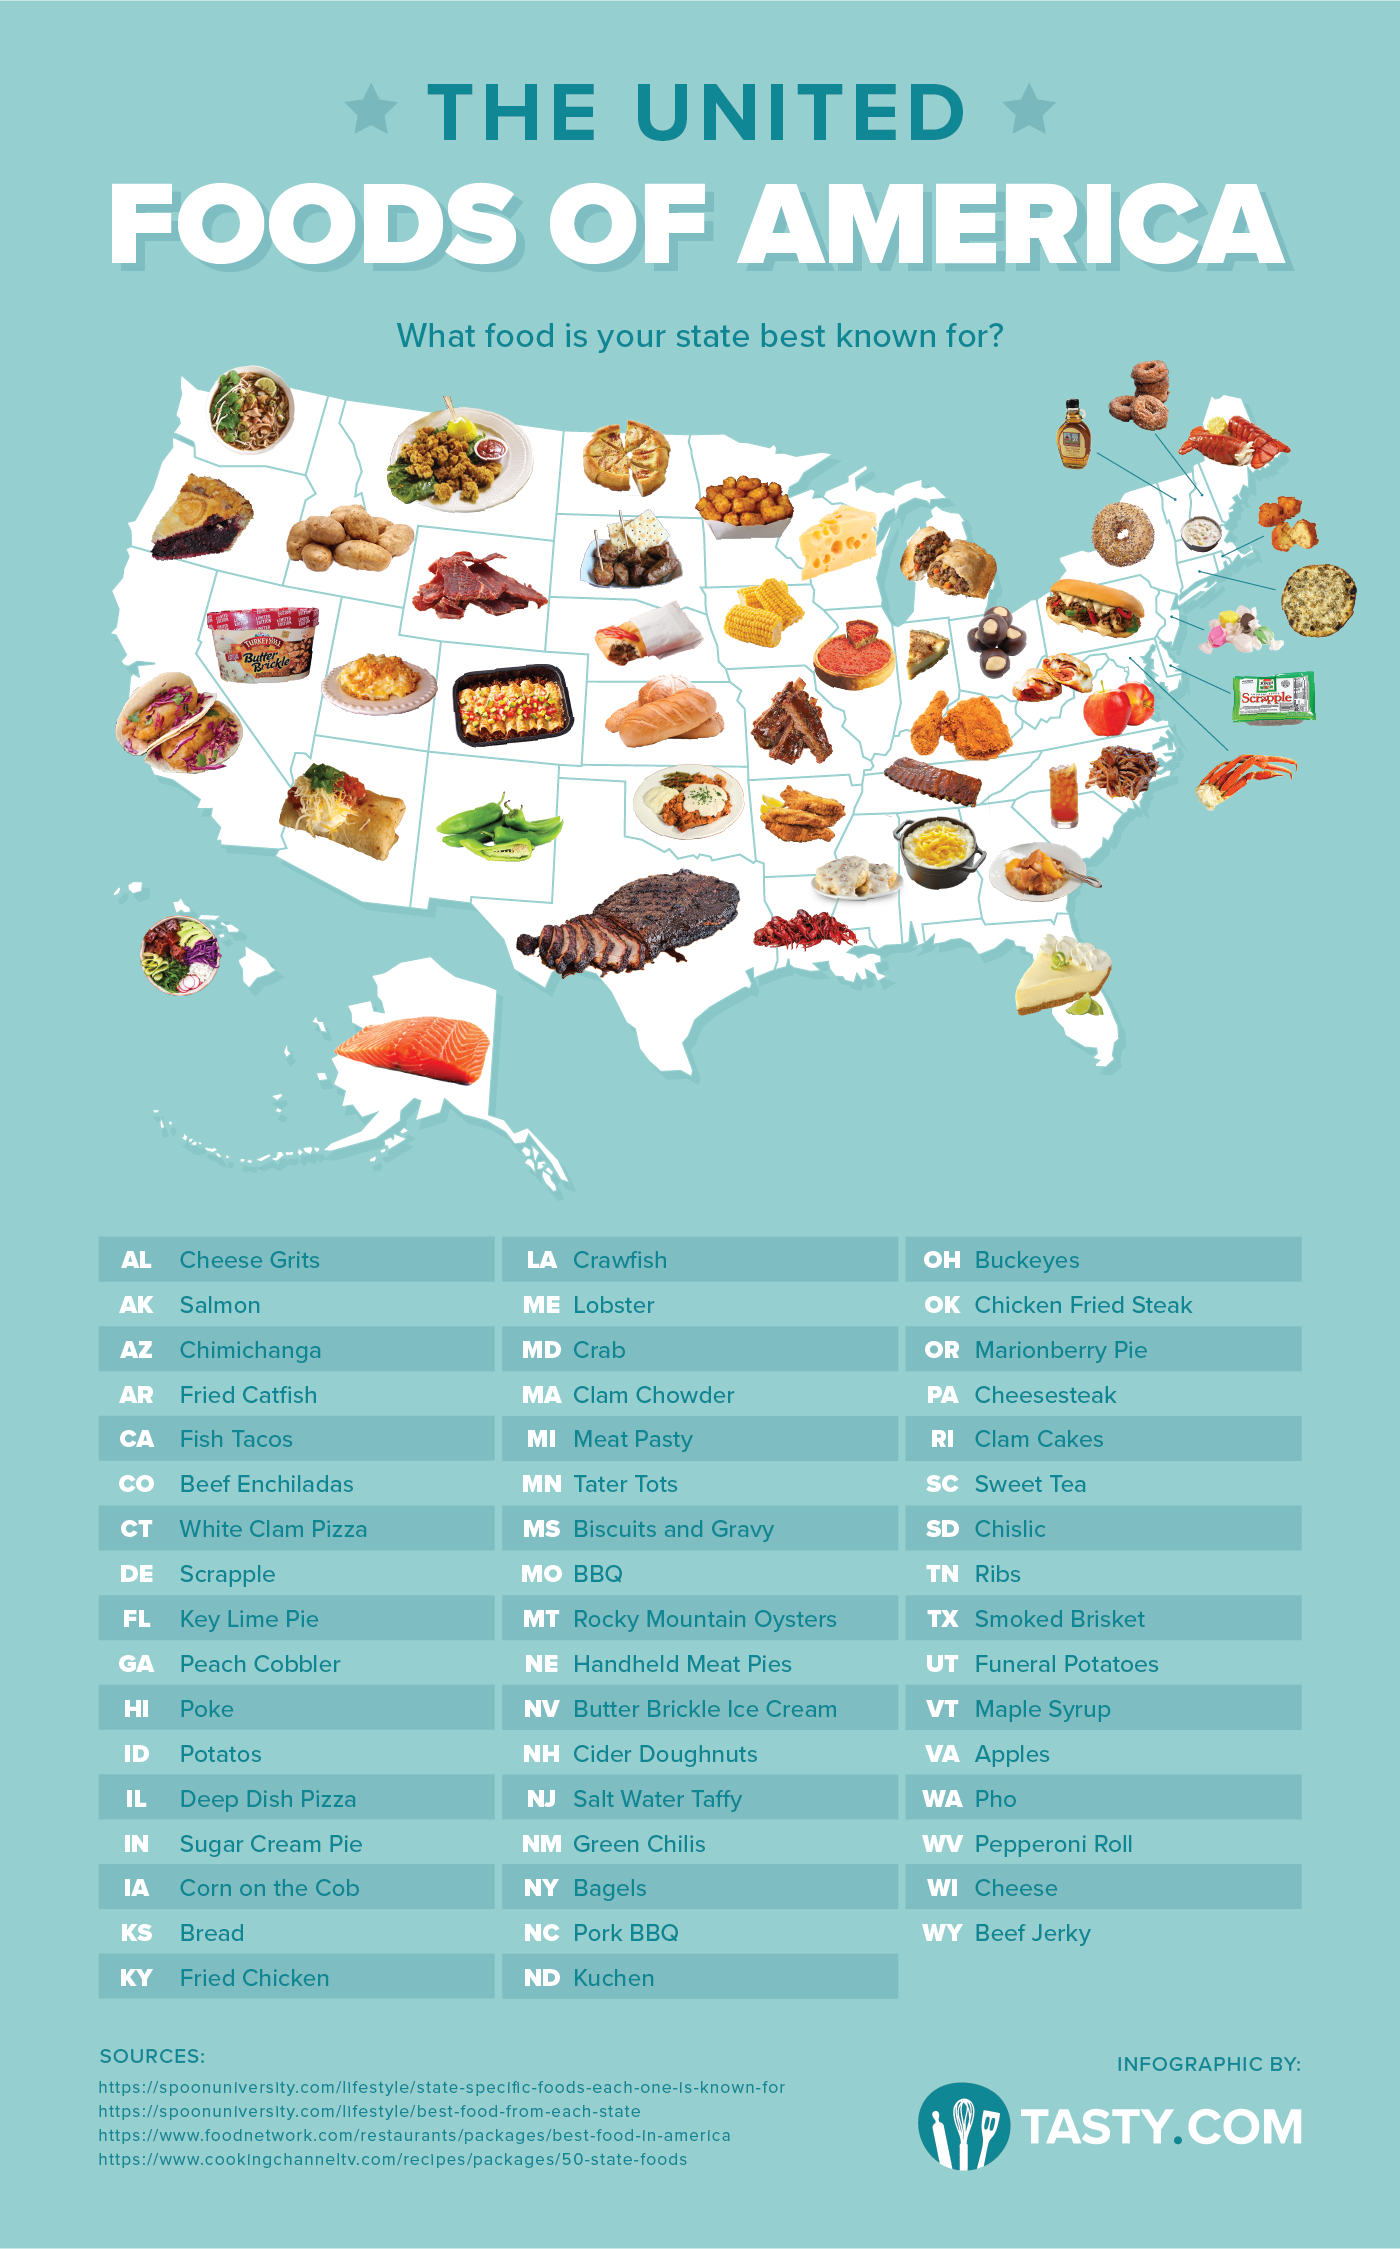 The Food Map of USA: Celeting American Culture - Infographic ... Infographic Map Of Usa on economy map of usa, sports map of usa, learning map of usa, maps map of usa, print map of usa, bing map of usa, diy map of usa, facebook map of usa, stencil map of usa, interactive map of usa, business map of usa, grid map of usa, diagram map of usa, food map of usa, space map of usa, clip art map of usa, media map of usa, travel map of usa, digital map of usa,